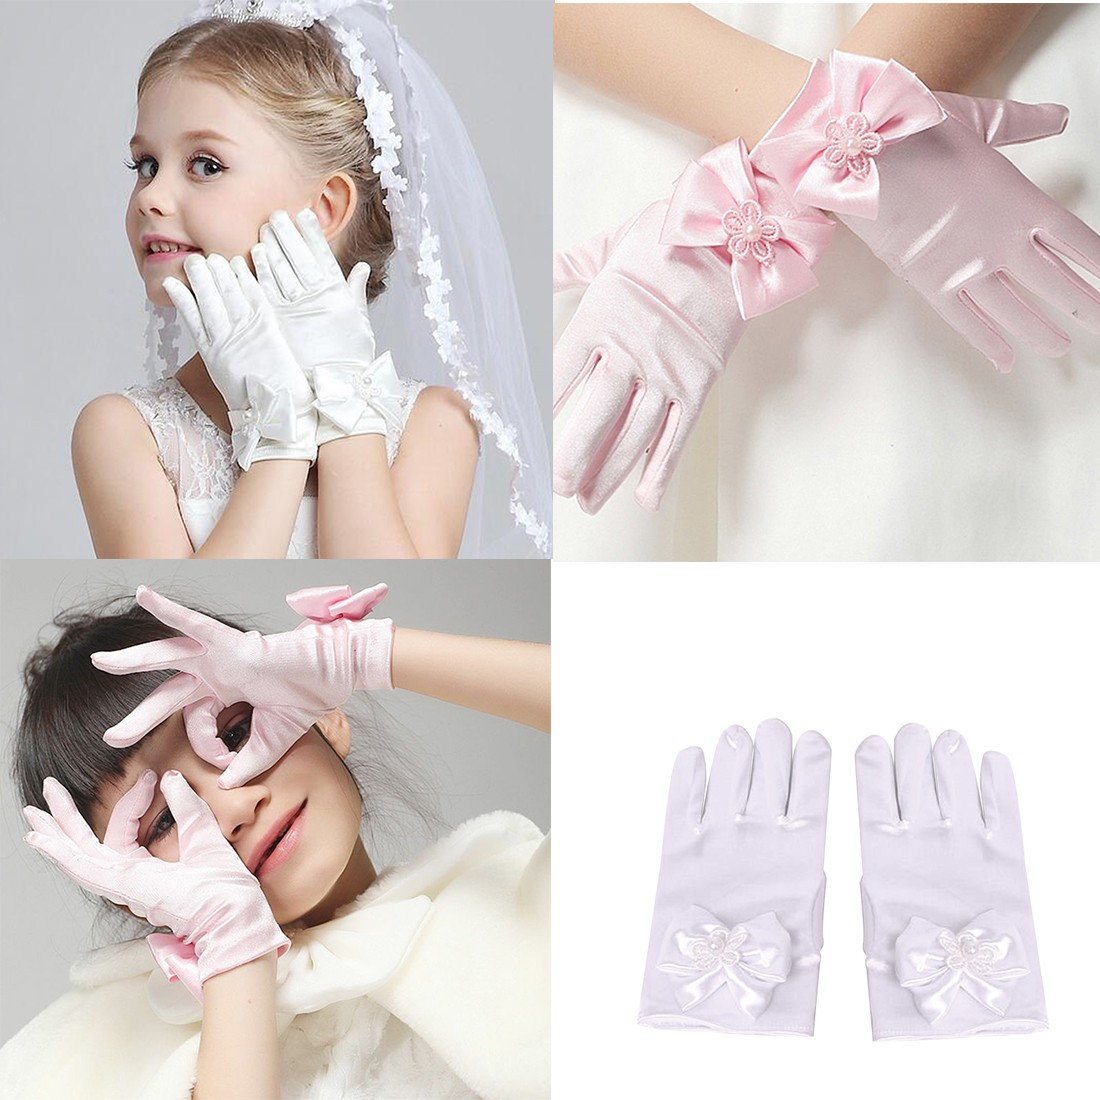 Top Sell Ovely Flower Girl Party Bowknot Female Fingerless Gloves Mittens Women Ceremony Communion Accessories Bow Princess Glov